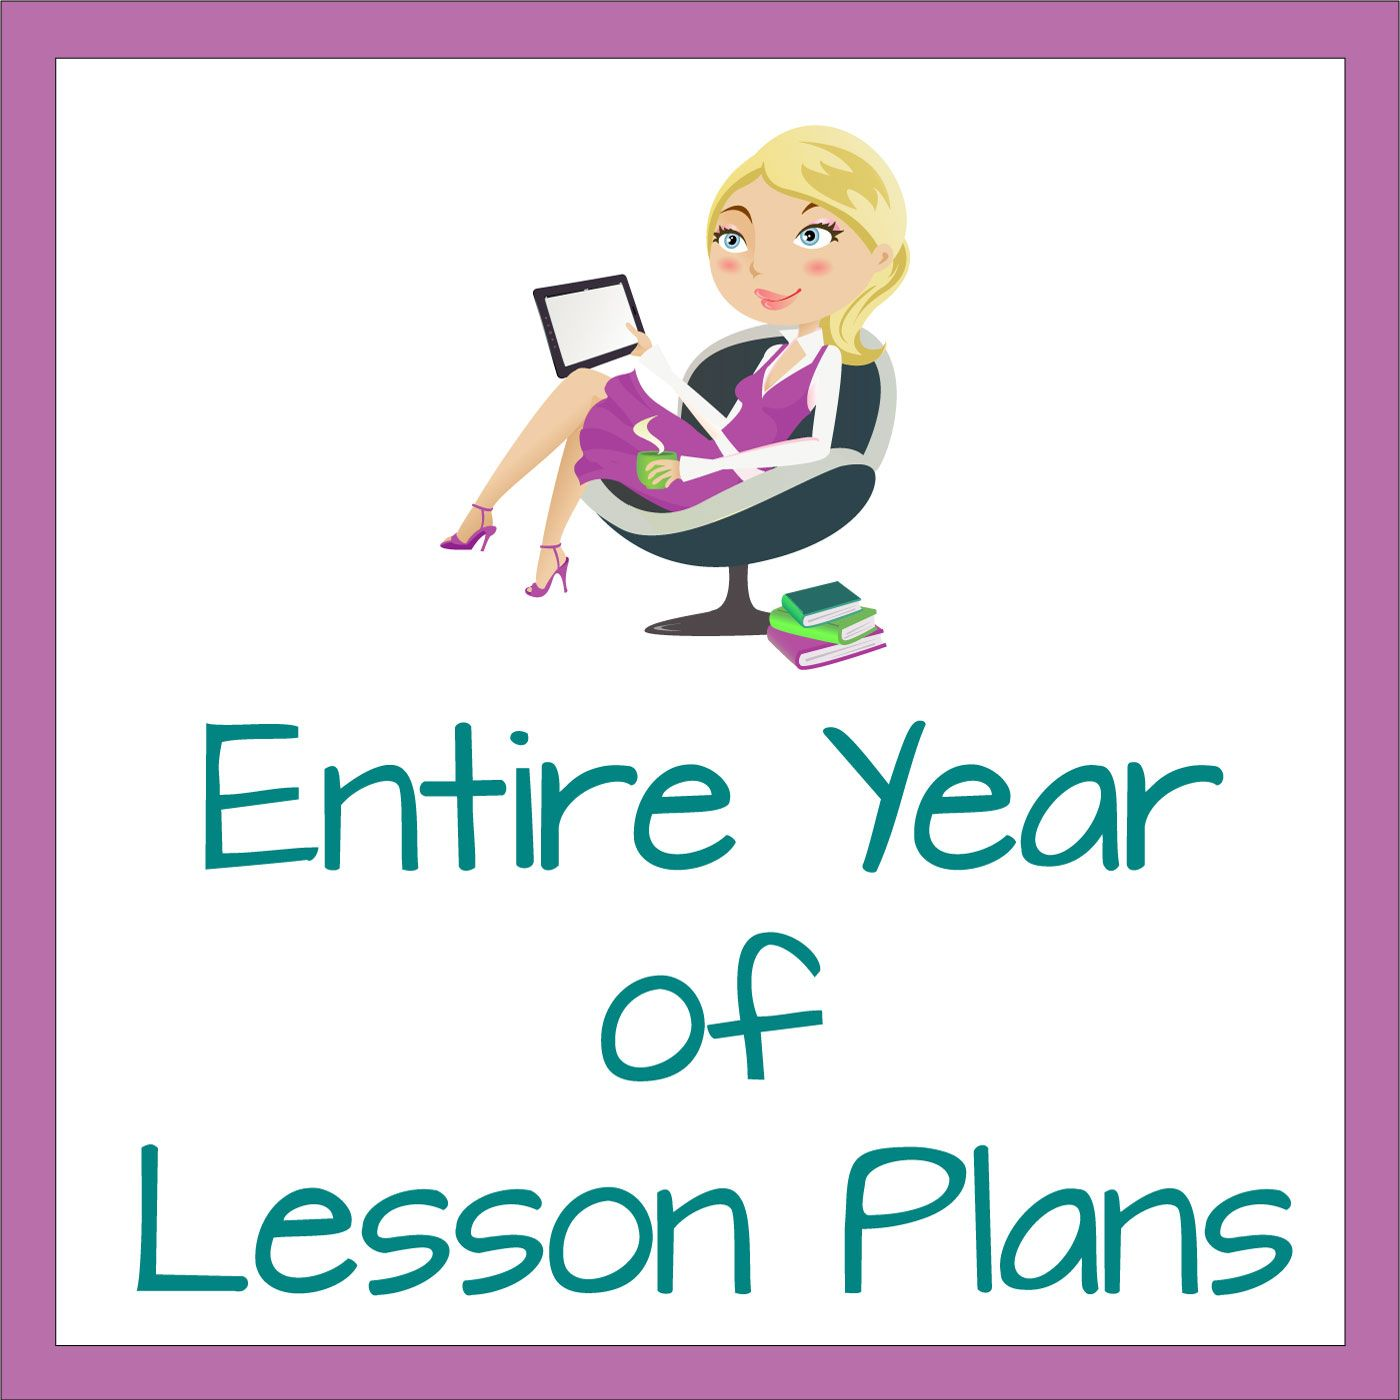 editable entire year of lesson plans in microsoft publisher format